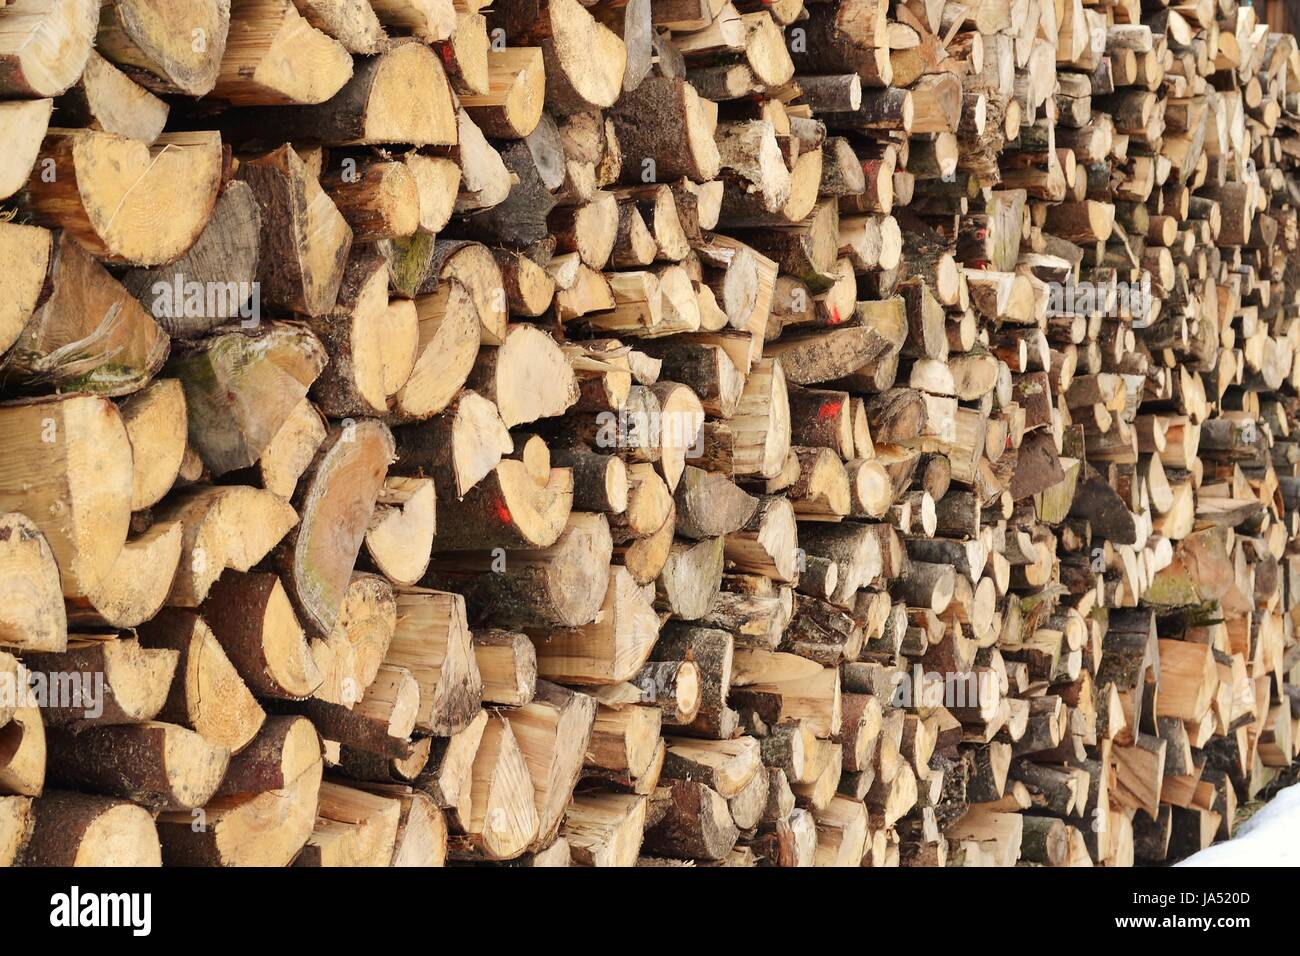 wood, firewood, fuel, softwood, wood, energy, power, electricity, electric - Stock Image